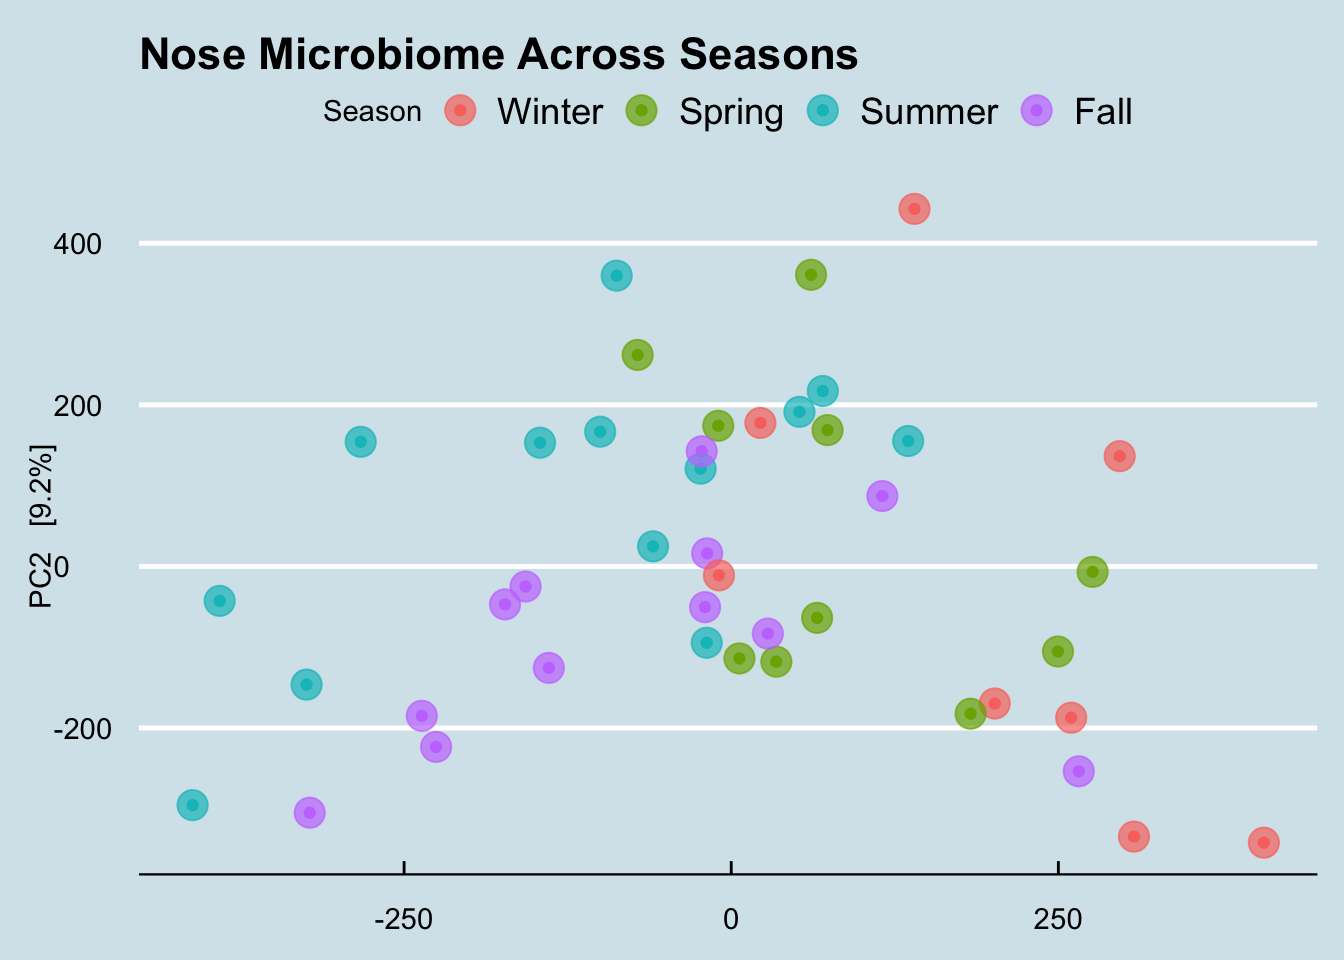 Nose microbiome across seasons in a single geography.